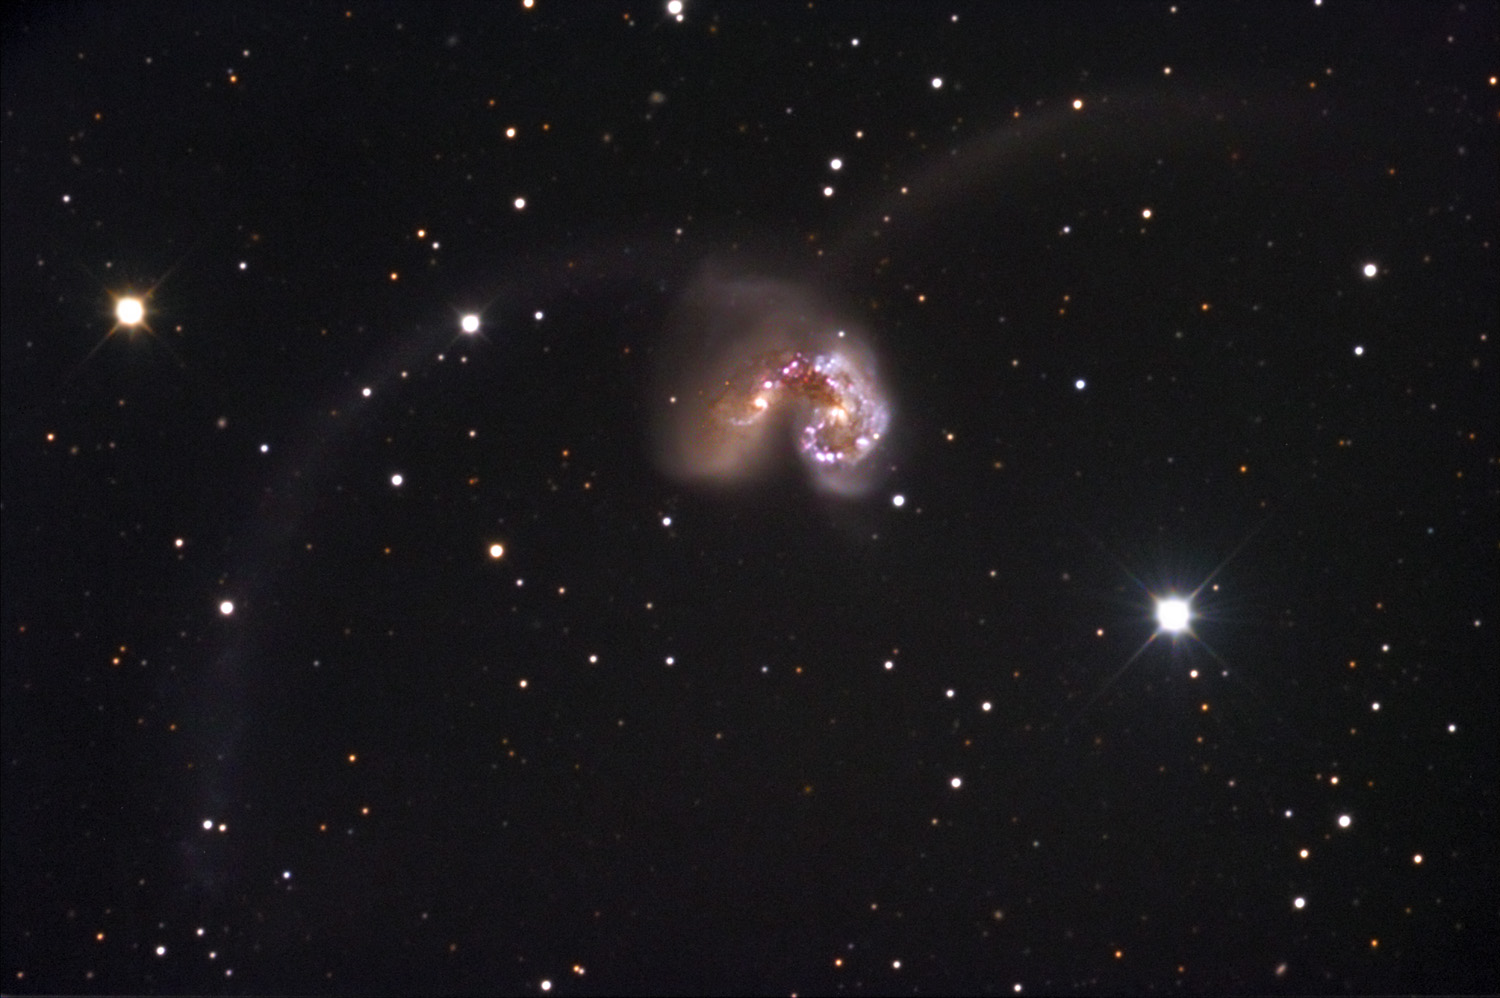 NGC 4038-39, Interacting Galaxies inCorvus